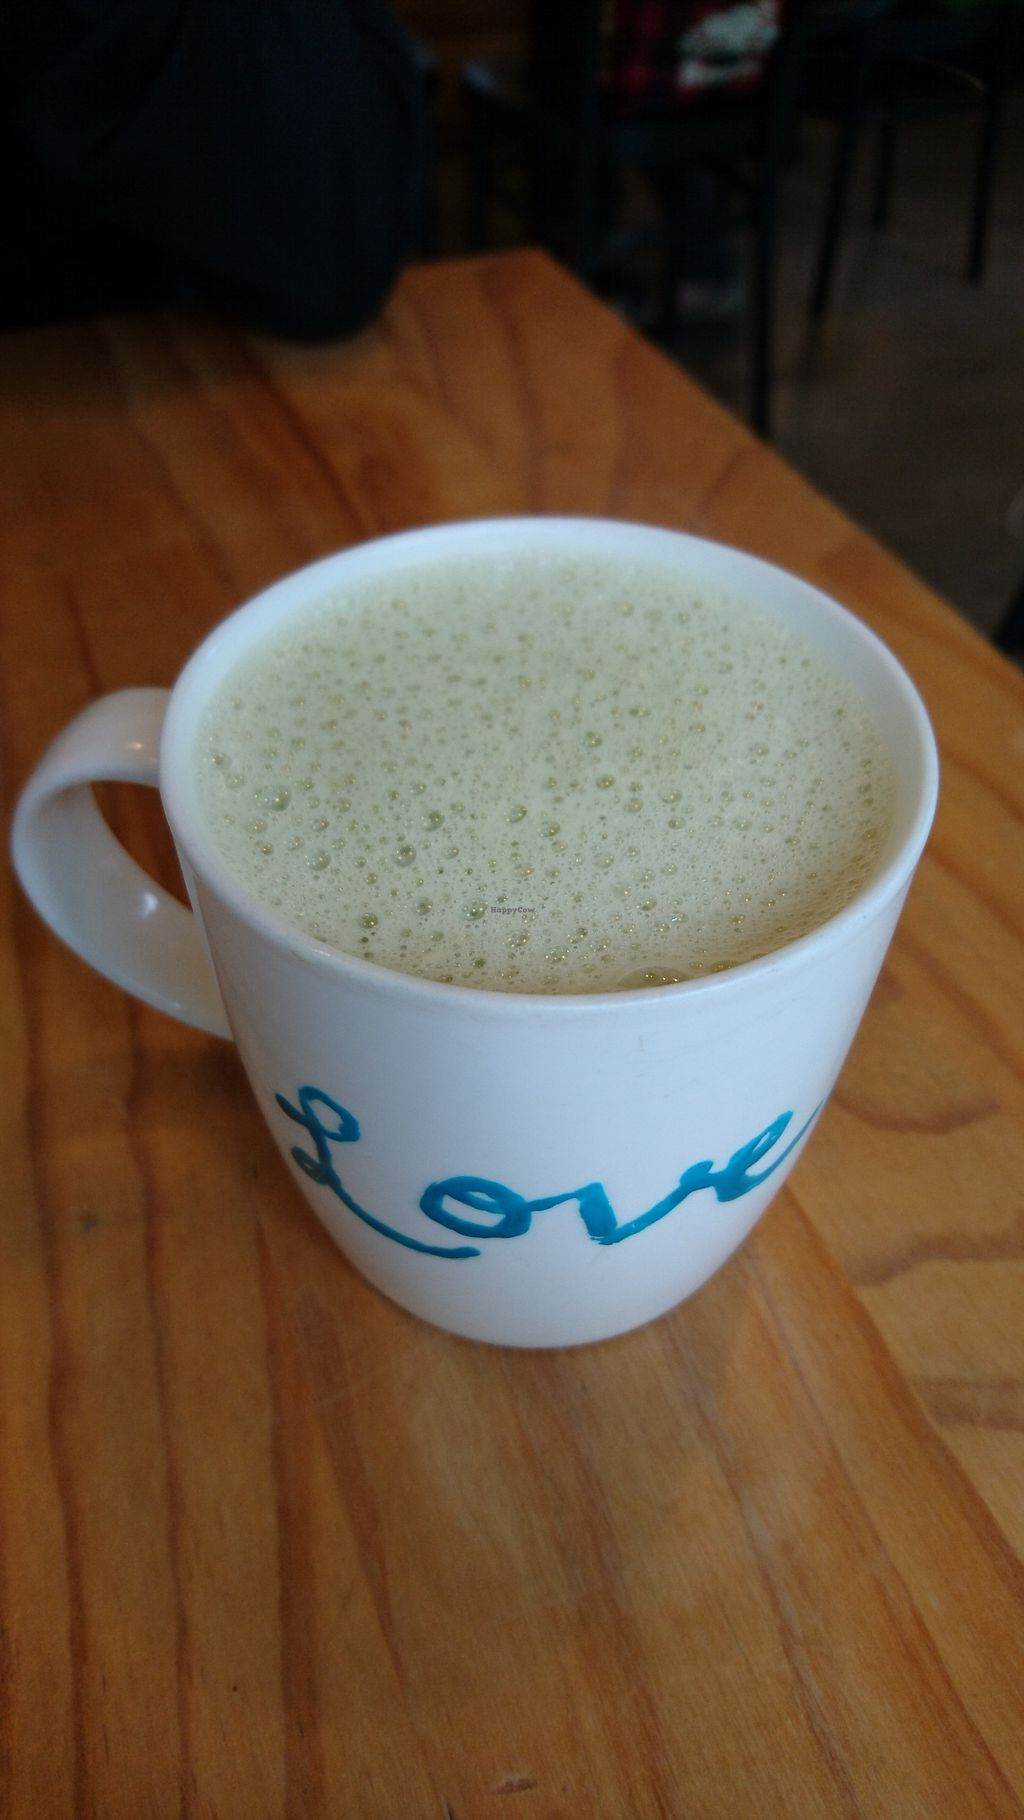 "Photo of Ooh Cha Cha  by <a href=""/members/profile/V-for-Vegan"">V-for-Vegan</a> <br/>Organic Matcha Green Latte <br/> March 23, 2018  - <a href='/contact/abuse/image/47521/374872'>Report</a>"